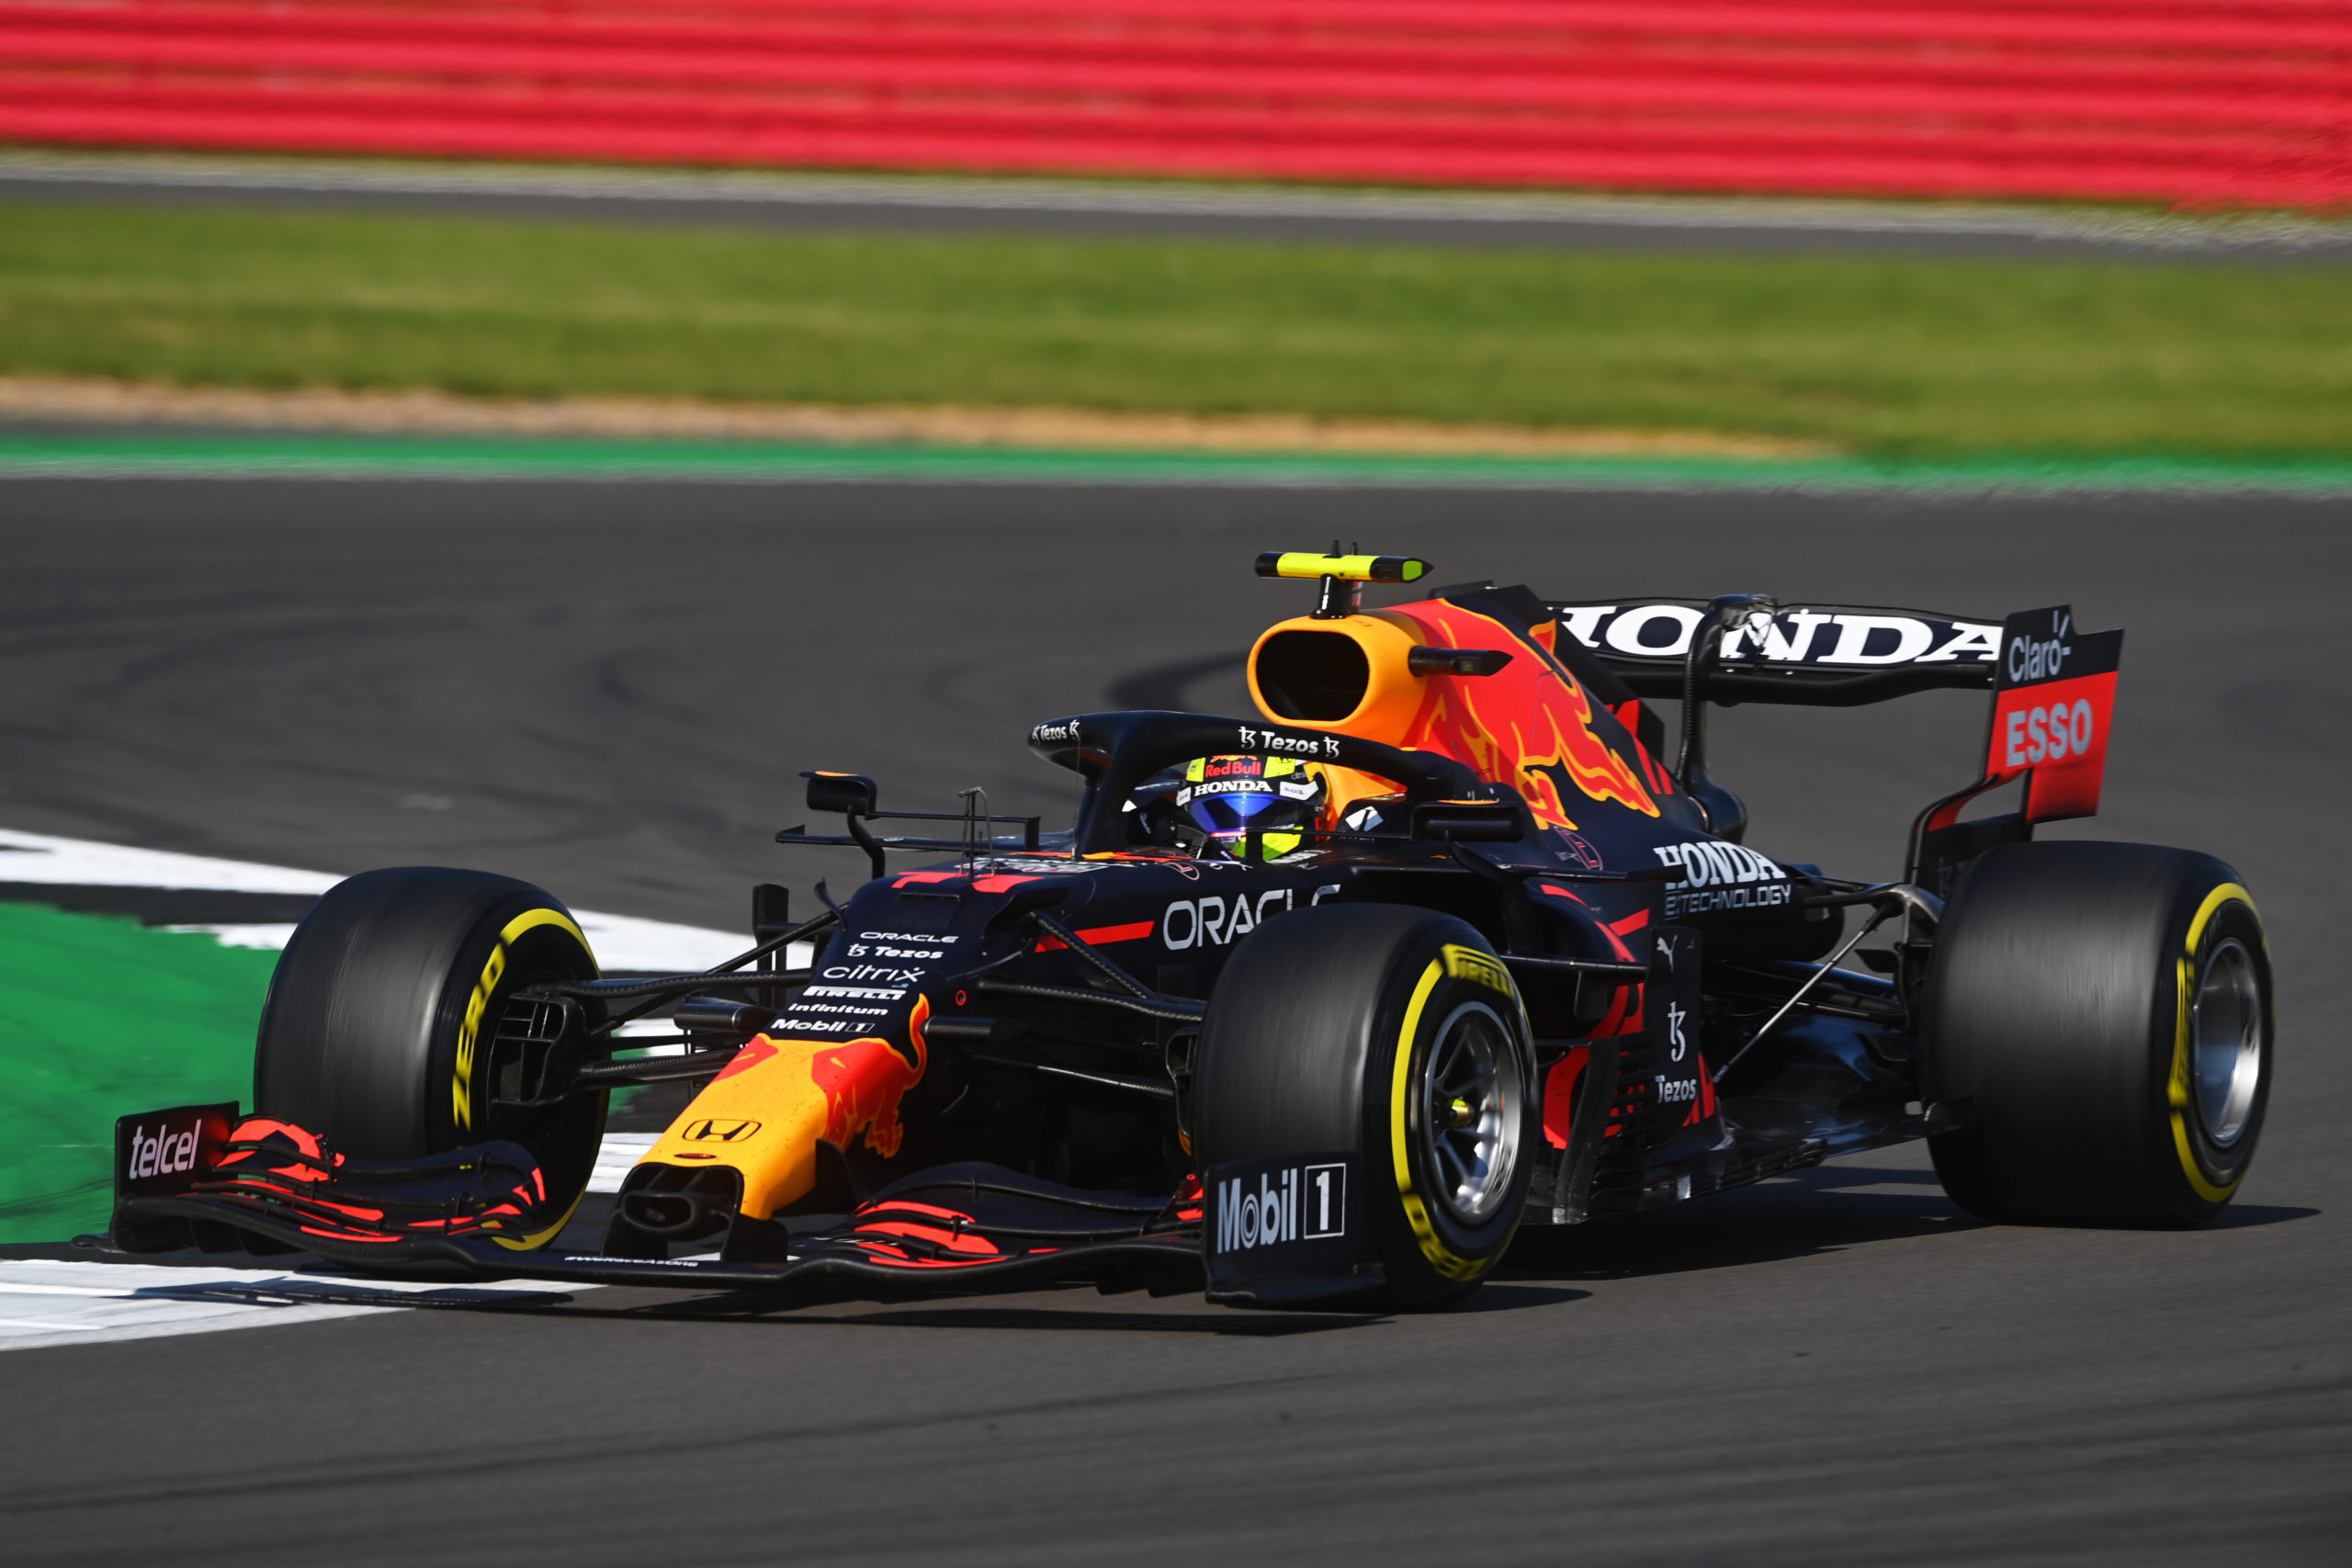 NORTHAMPTON, ENGLAND - JULY 18: Sergio Perez of Mexico driving the (11) Red Bull Racing RB16B Honda during the F1 Grand Prix of Great Britain at Silverstone on July 18, 2021 in Northampton, England. (Photo by Michael Regan/Getty Images) // Getty Images / Red Bull Content Pool  // SI202107180270 // Usage for editorial use only //